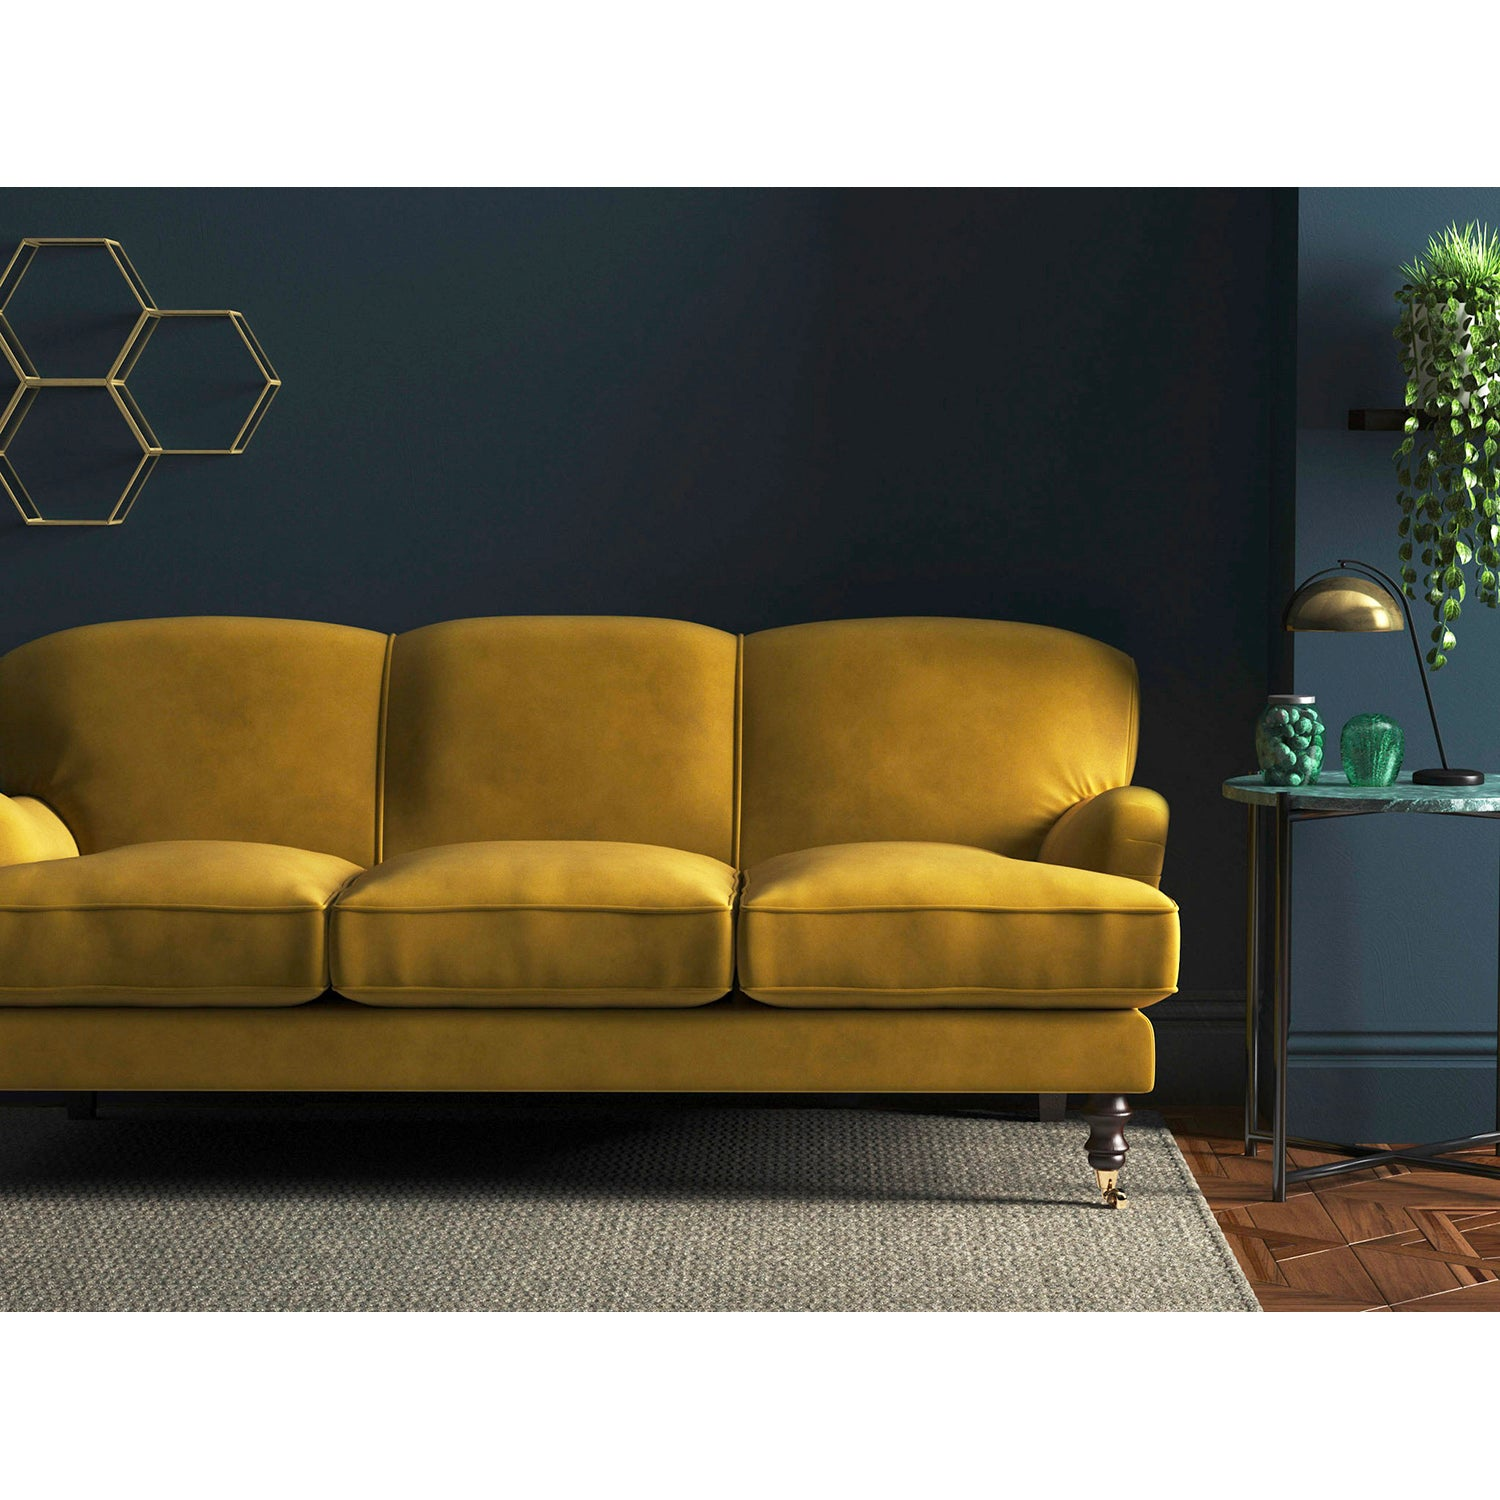 Sofa in a luxury mustard yellow velvet upholstery fabric with a stain resistant finish